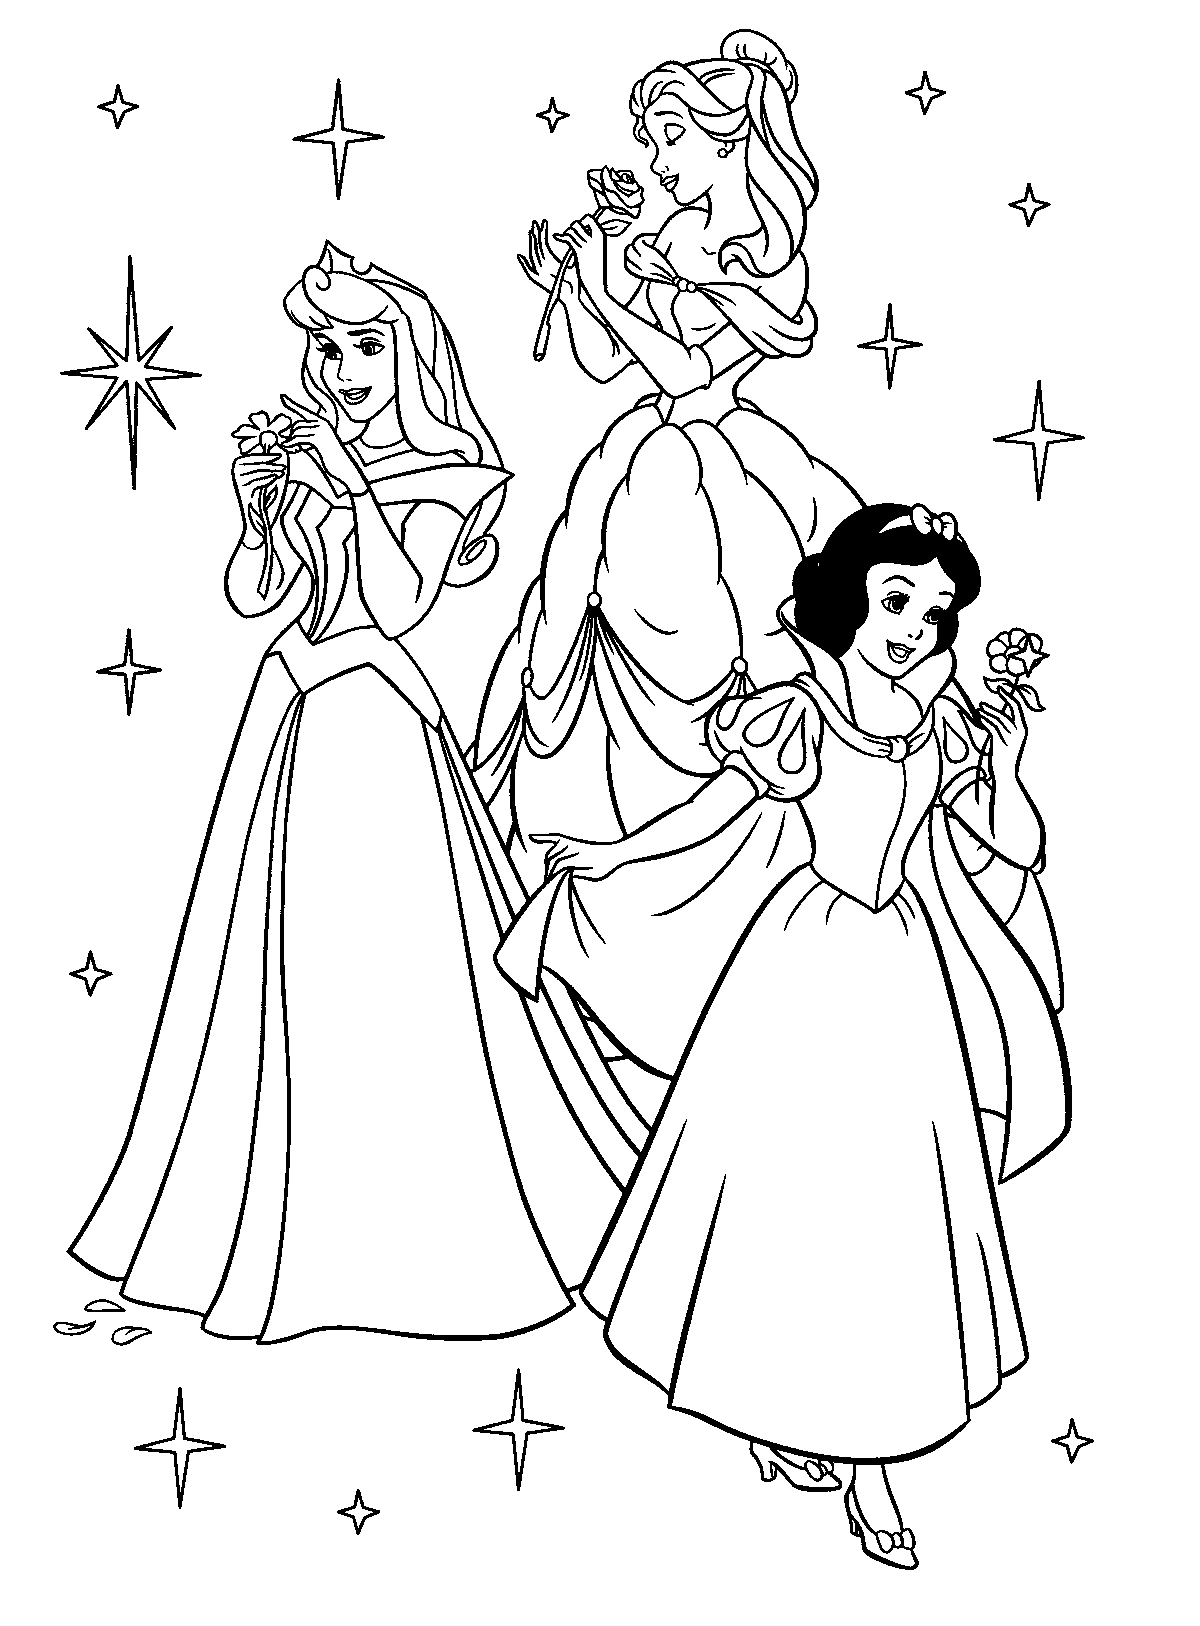 Coloring Pages Halloween Princess : Princess coloring pages kids